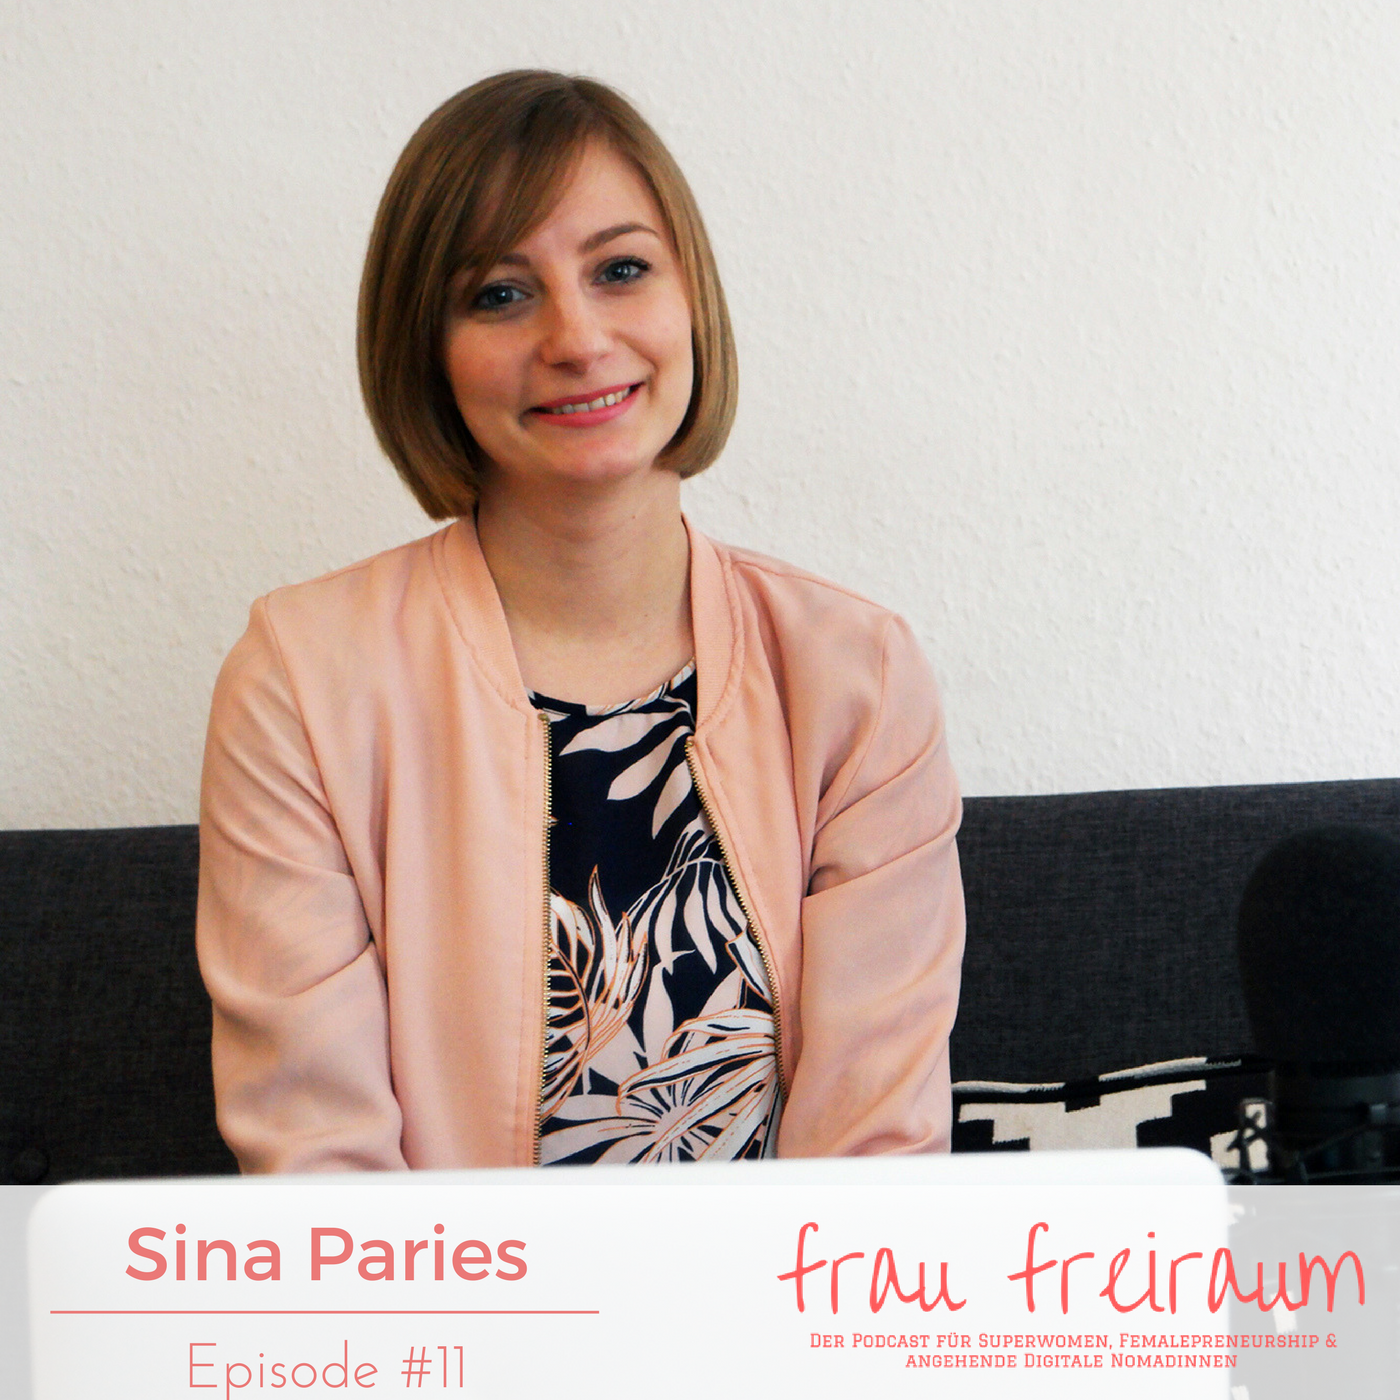 Sina Paries im Interview_ #11 frau freiraum